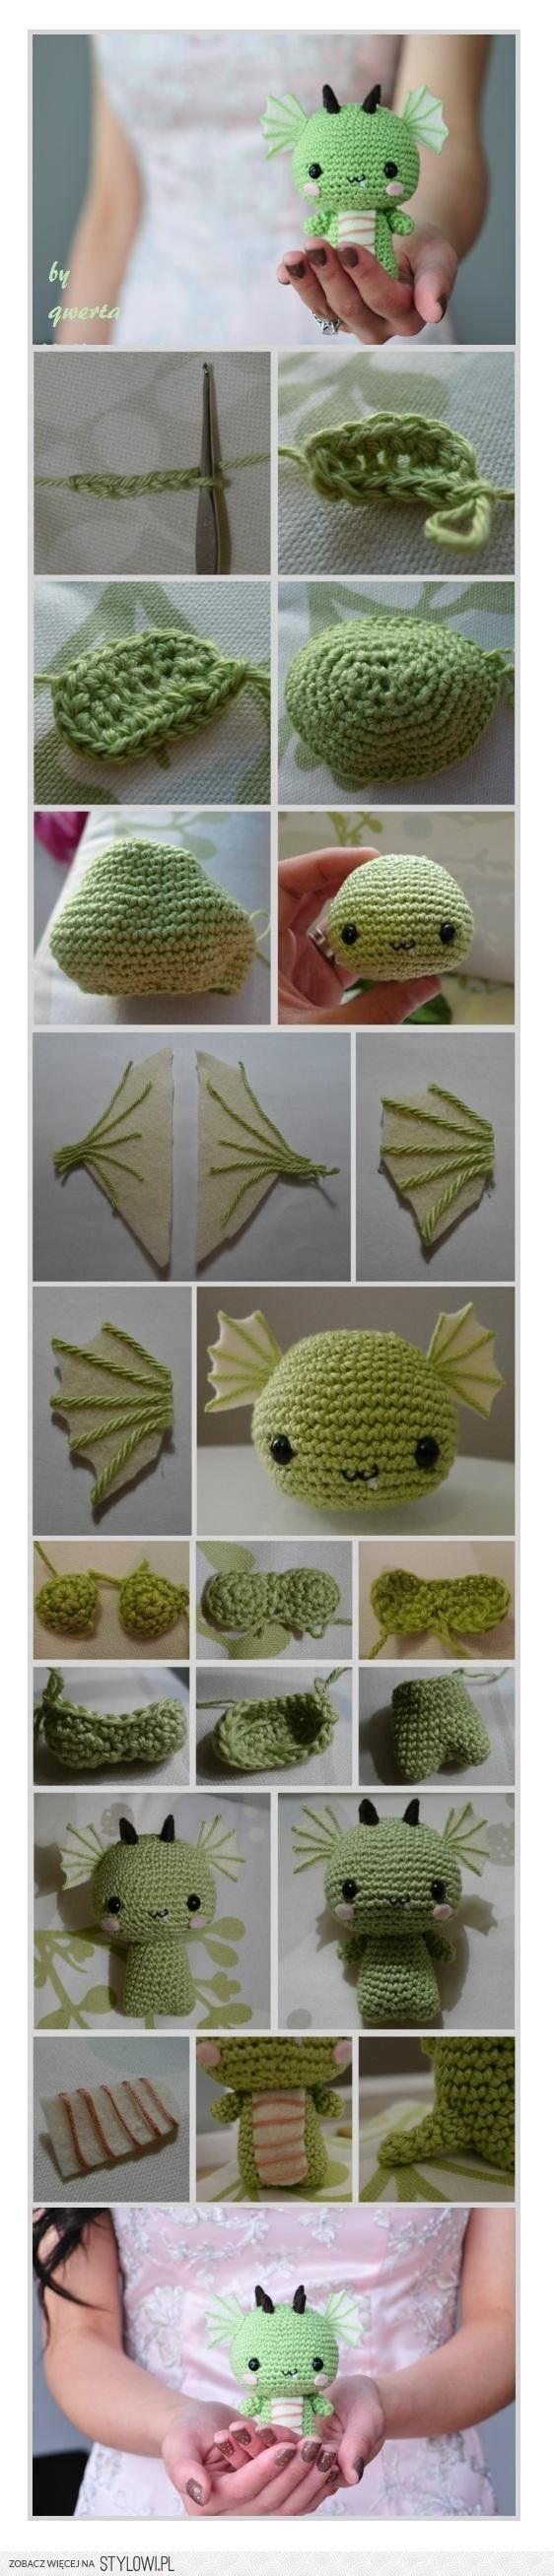 Crochet dragon - Maybe Grandma or Jenny can make me one for when ...